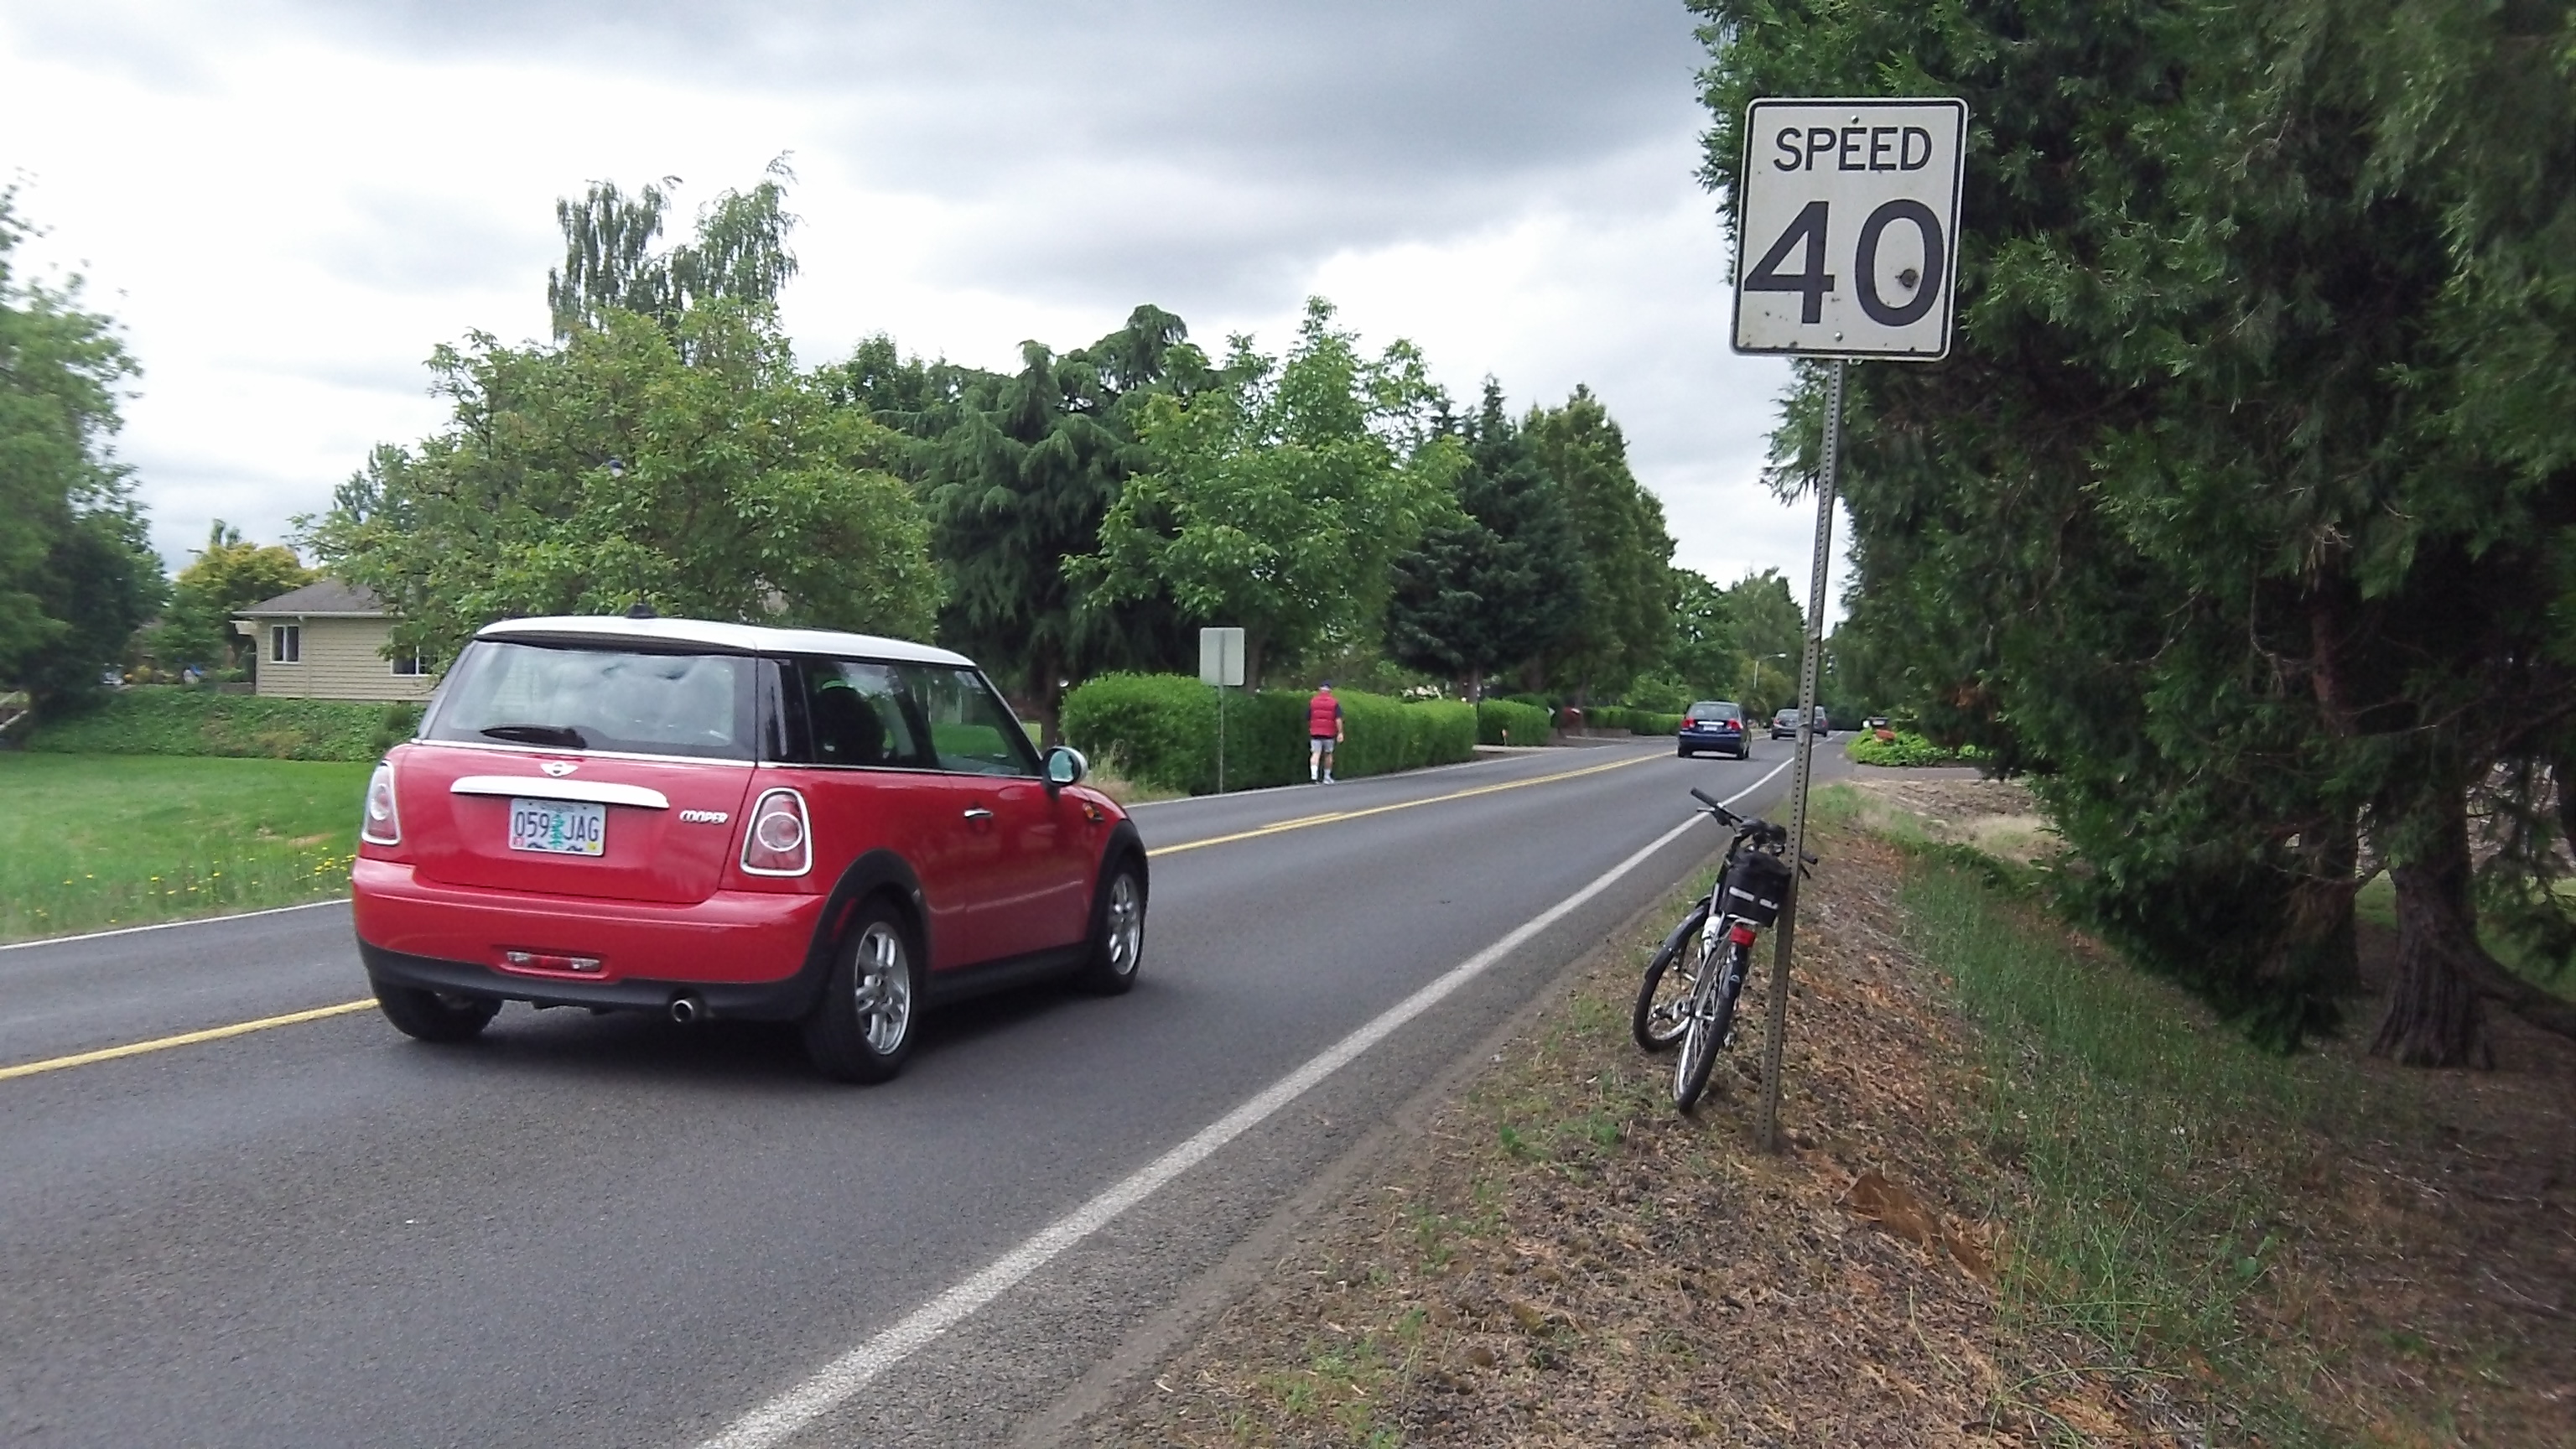 Going south on Spring Hill: The 40-mph speed zone starts here.